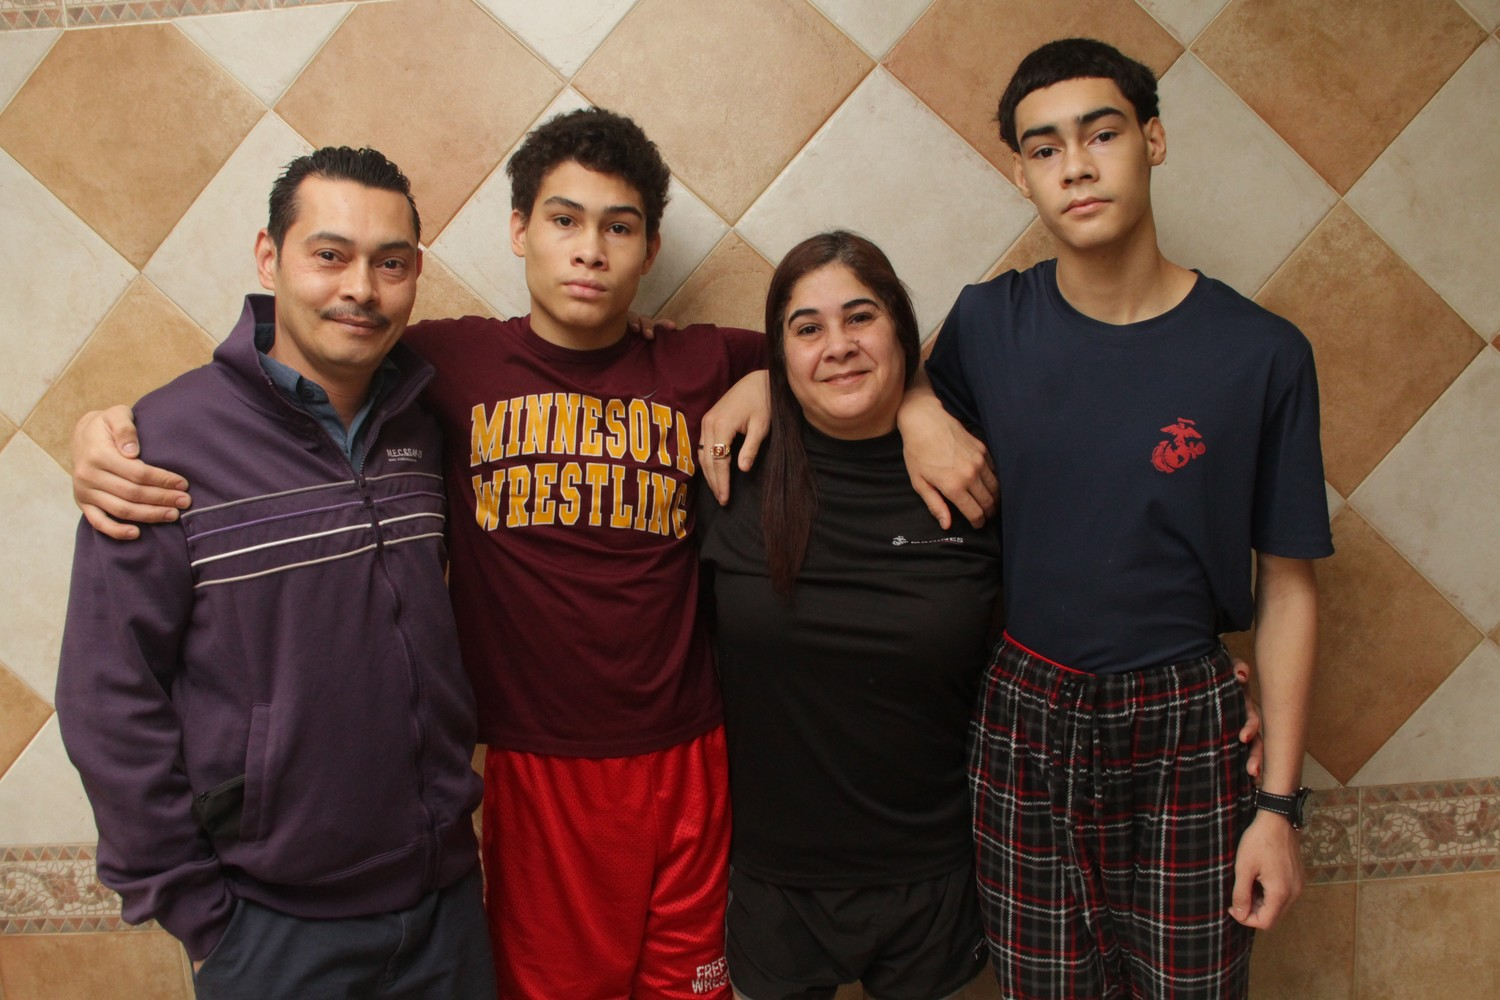 The Mauras family, including Sergio, left, Lee, Elizabeth and Sebastian, right, were all smiles after having a family discussion about Sebastian's decision to join the United States Marine Corps.